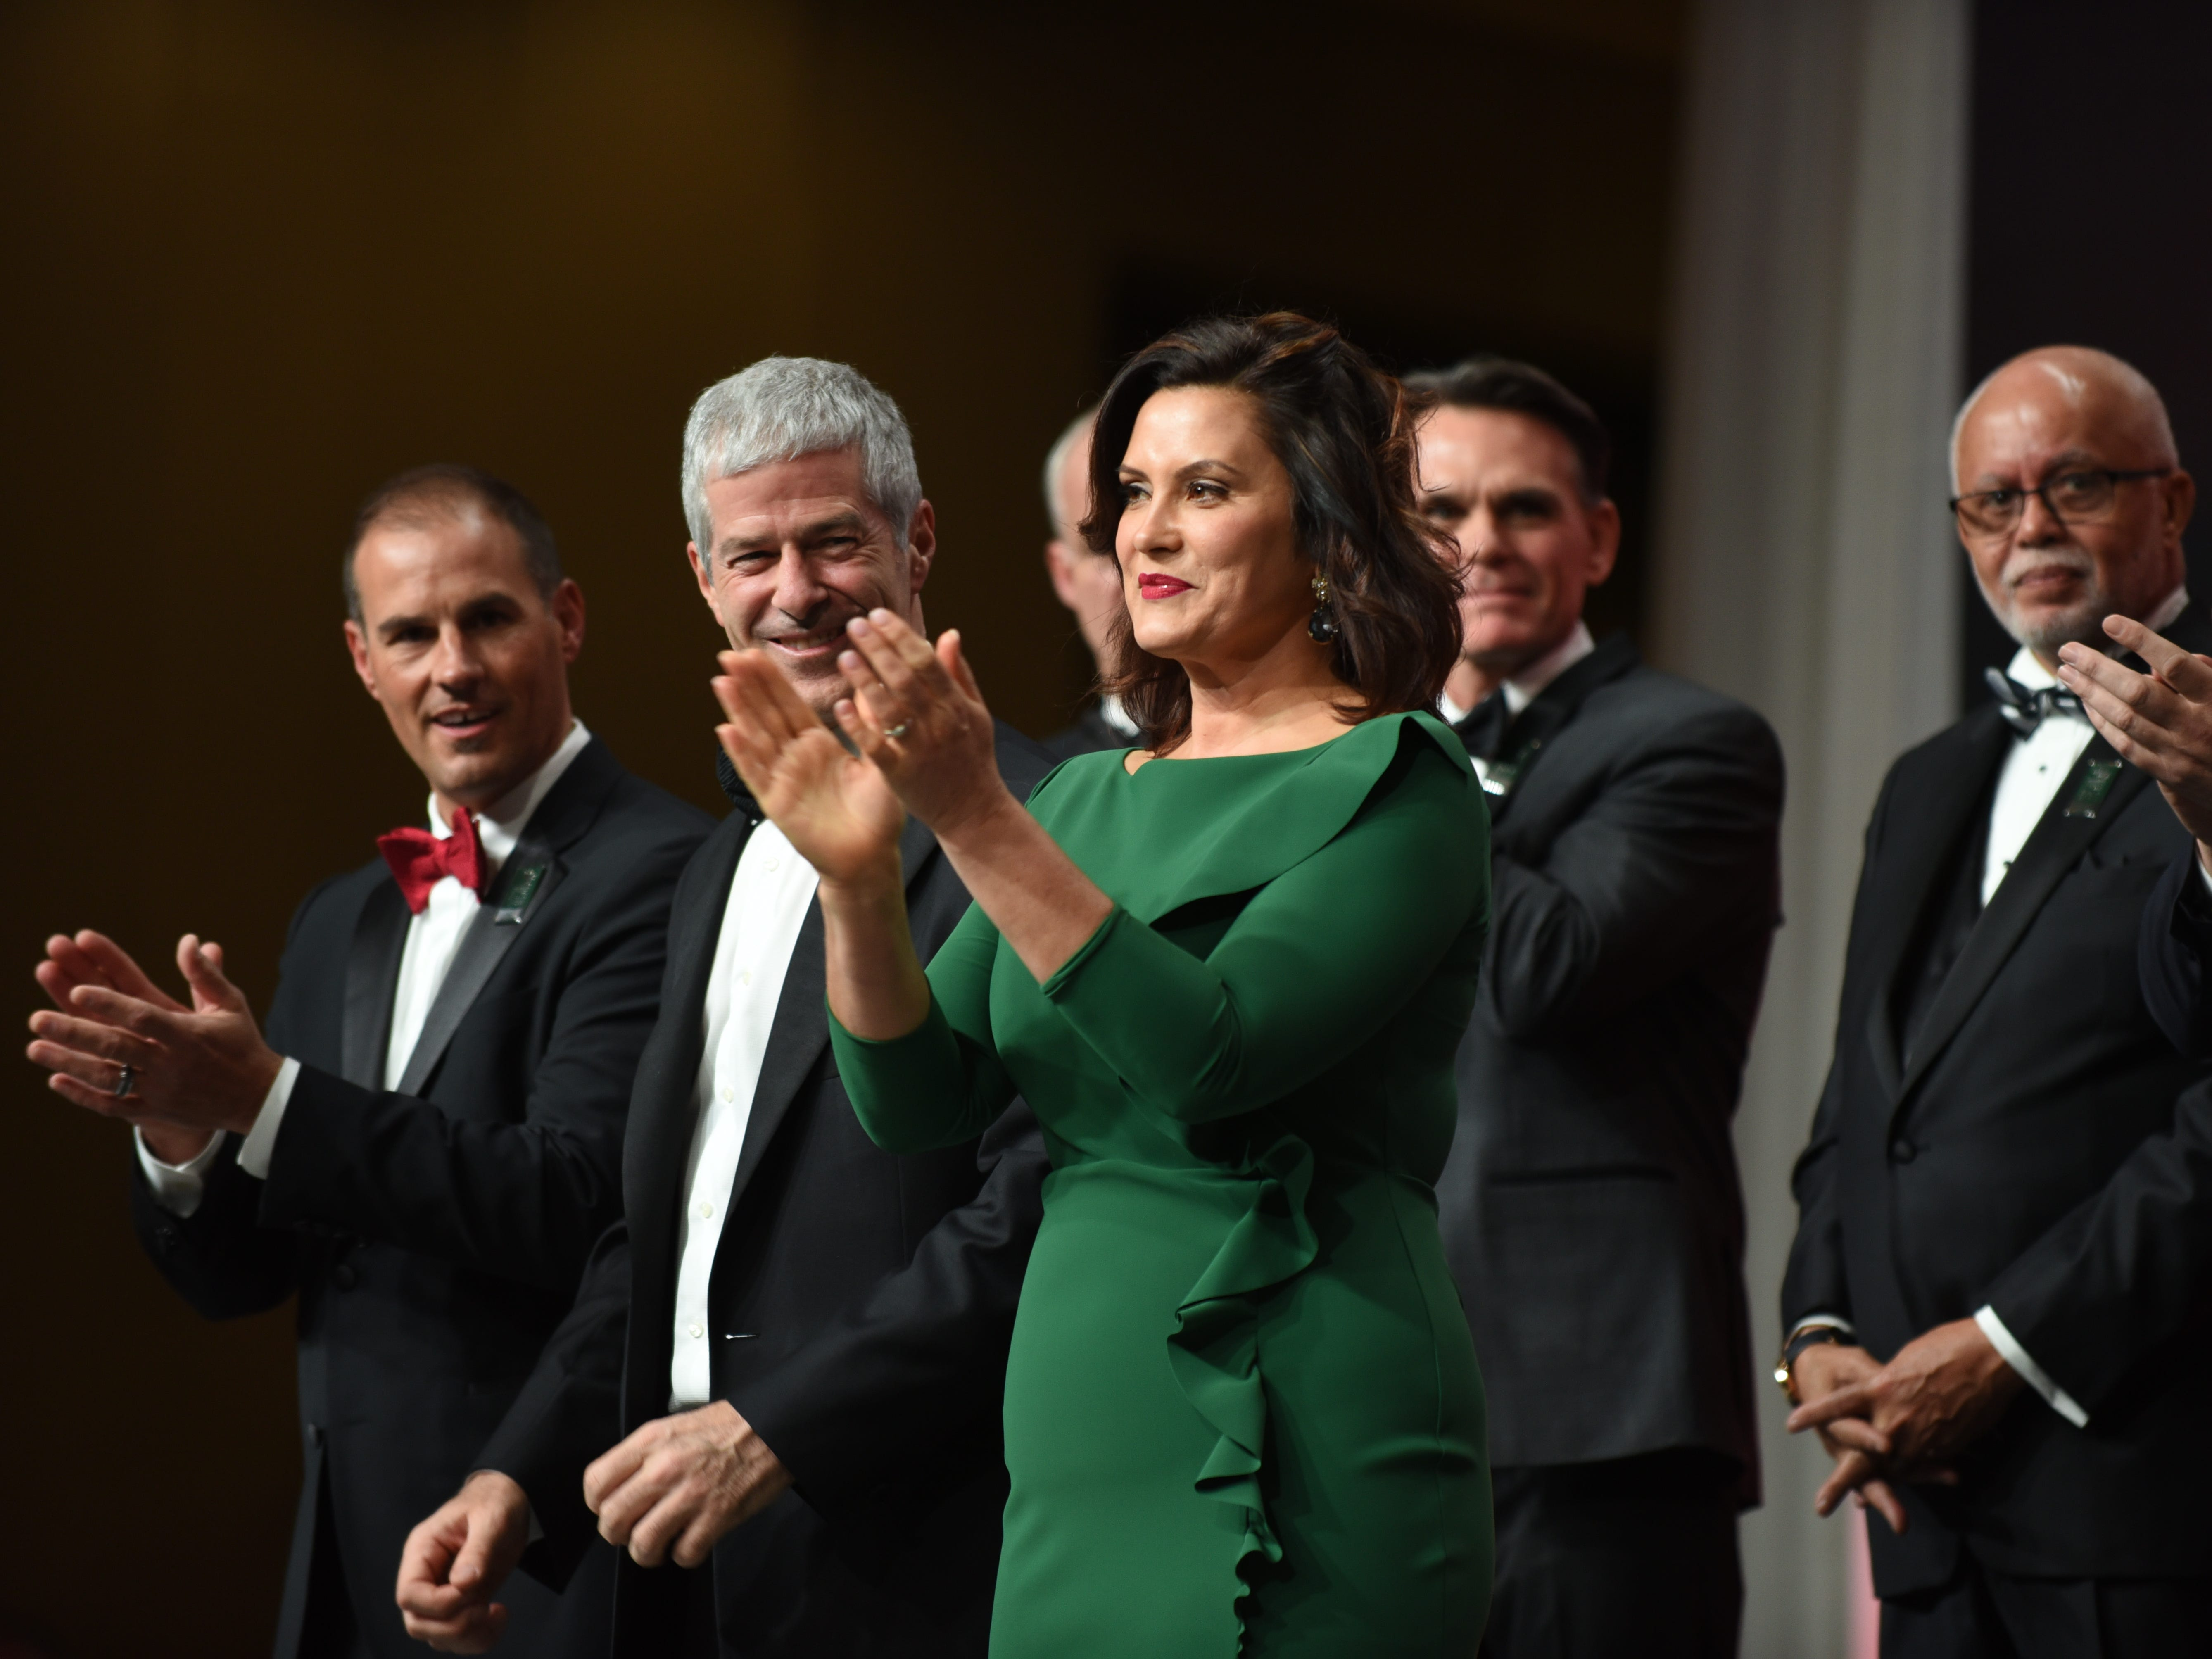 Michigan Gov. Gretchen Whitmer claps during the introductions.